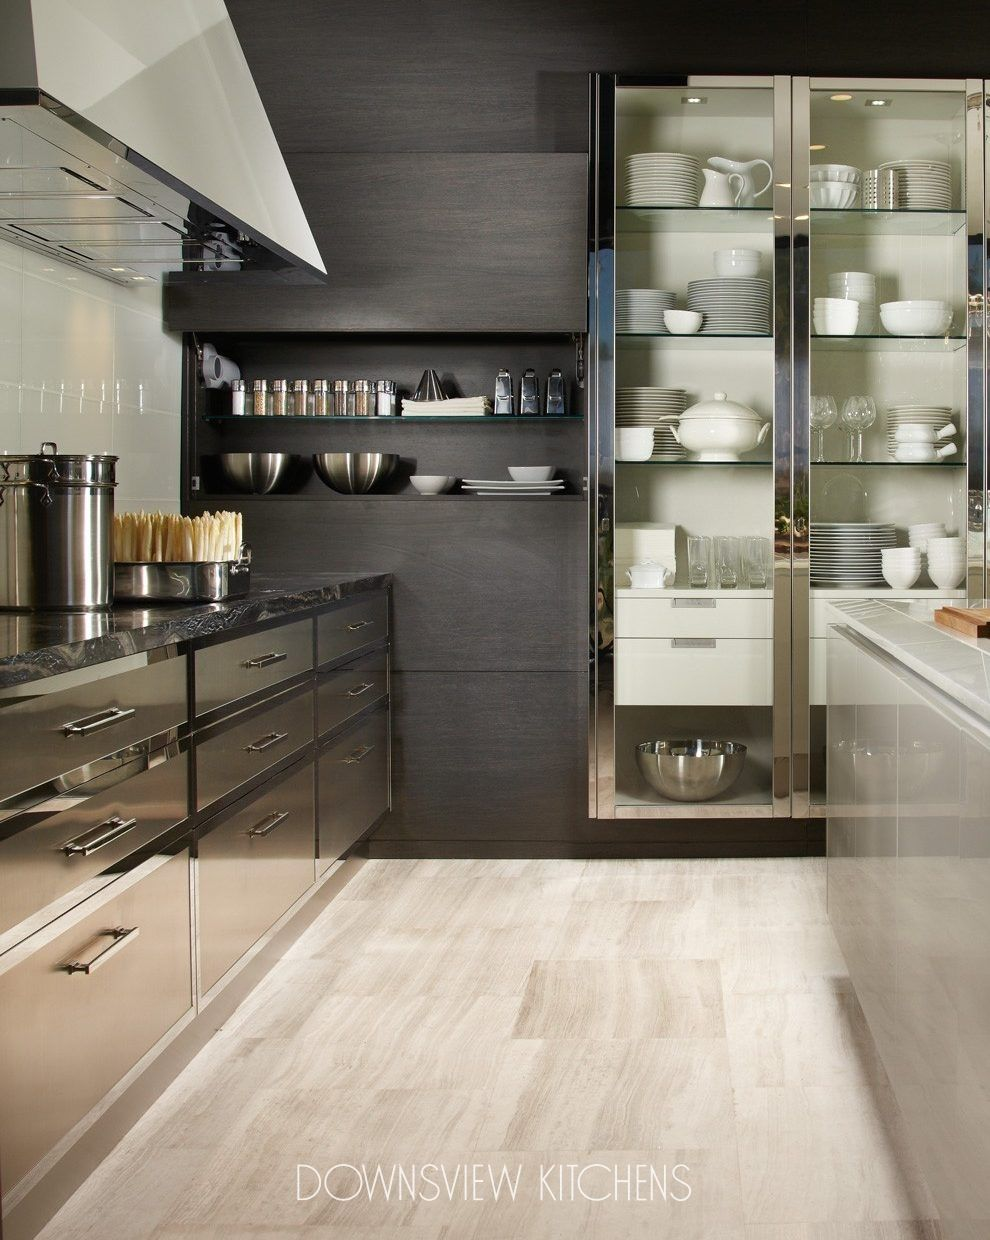 Best Modern Reflections Downsview Kitchens And Fine Custom 400 x 300